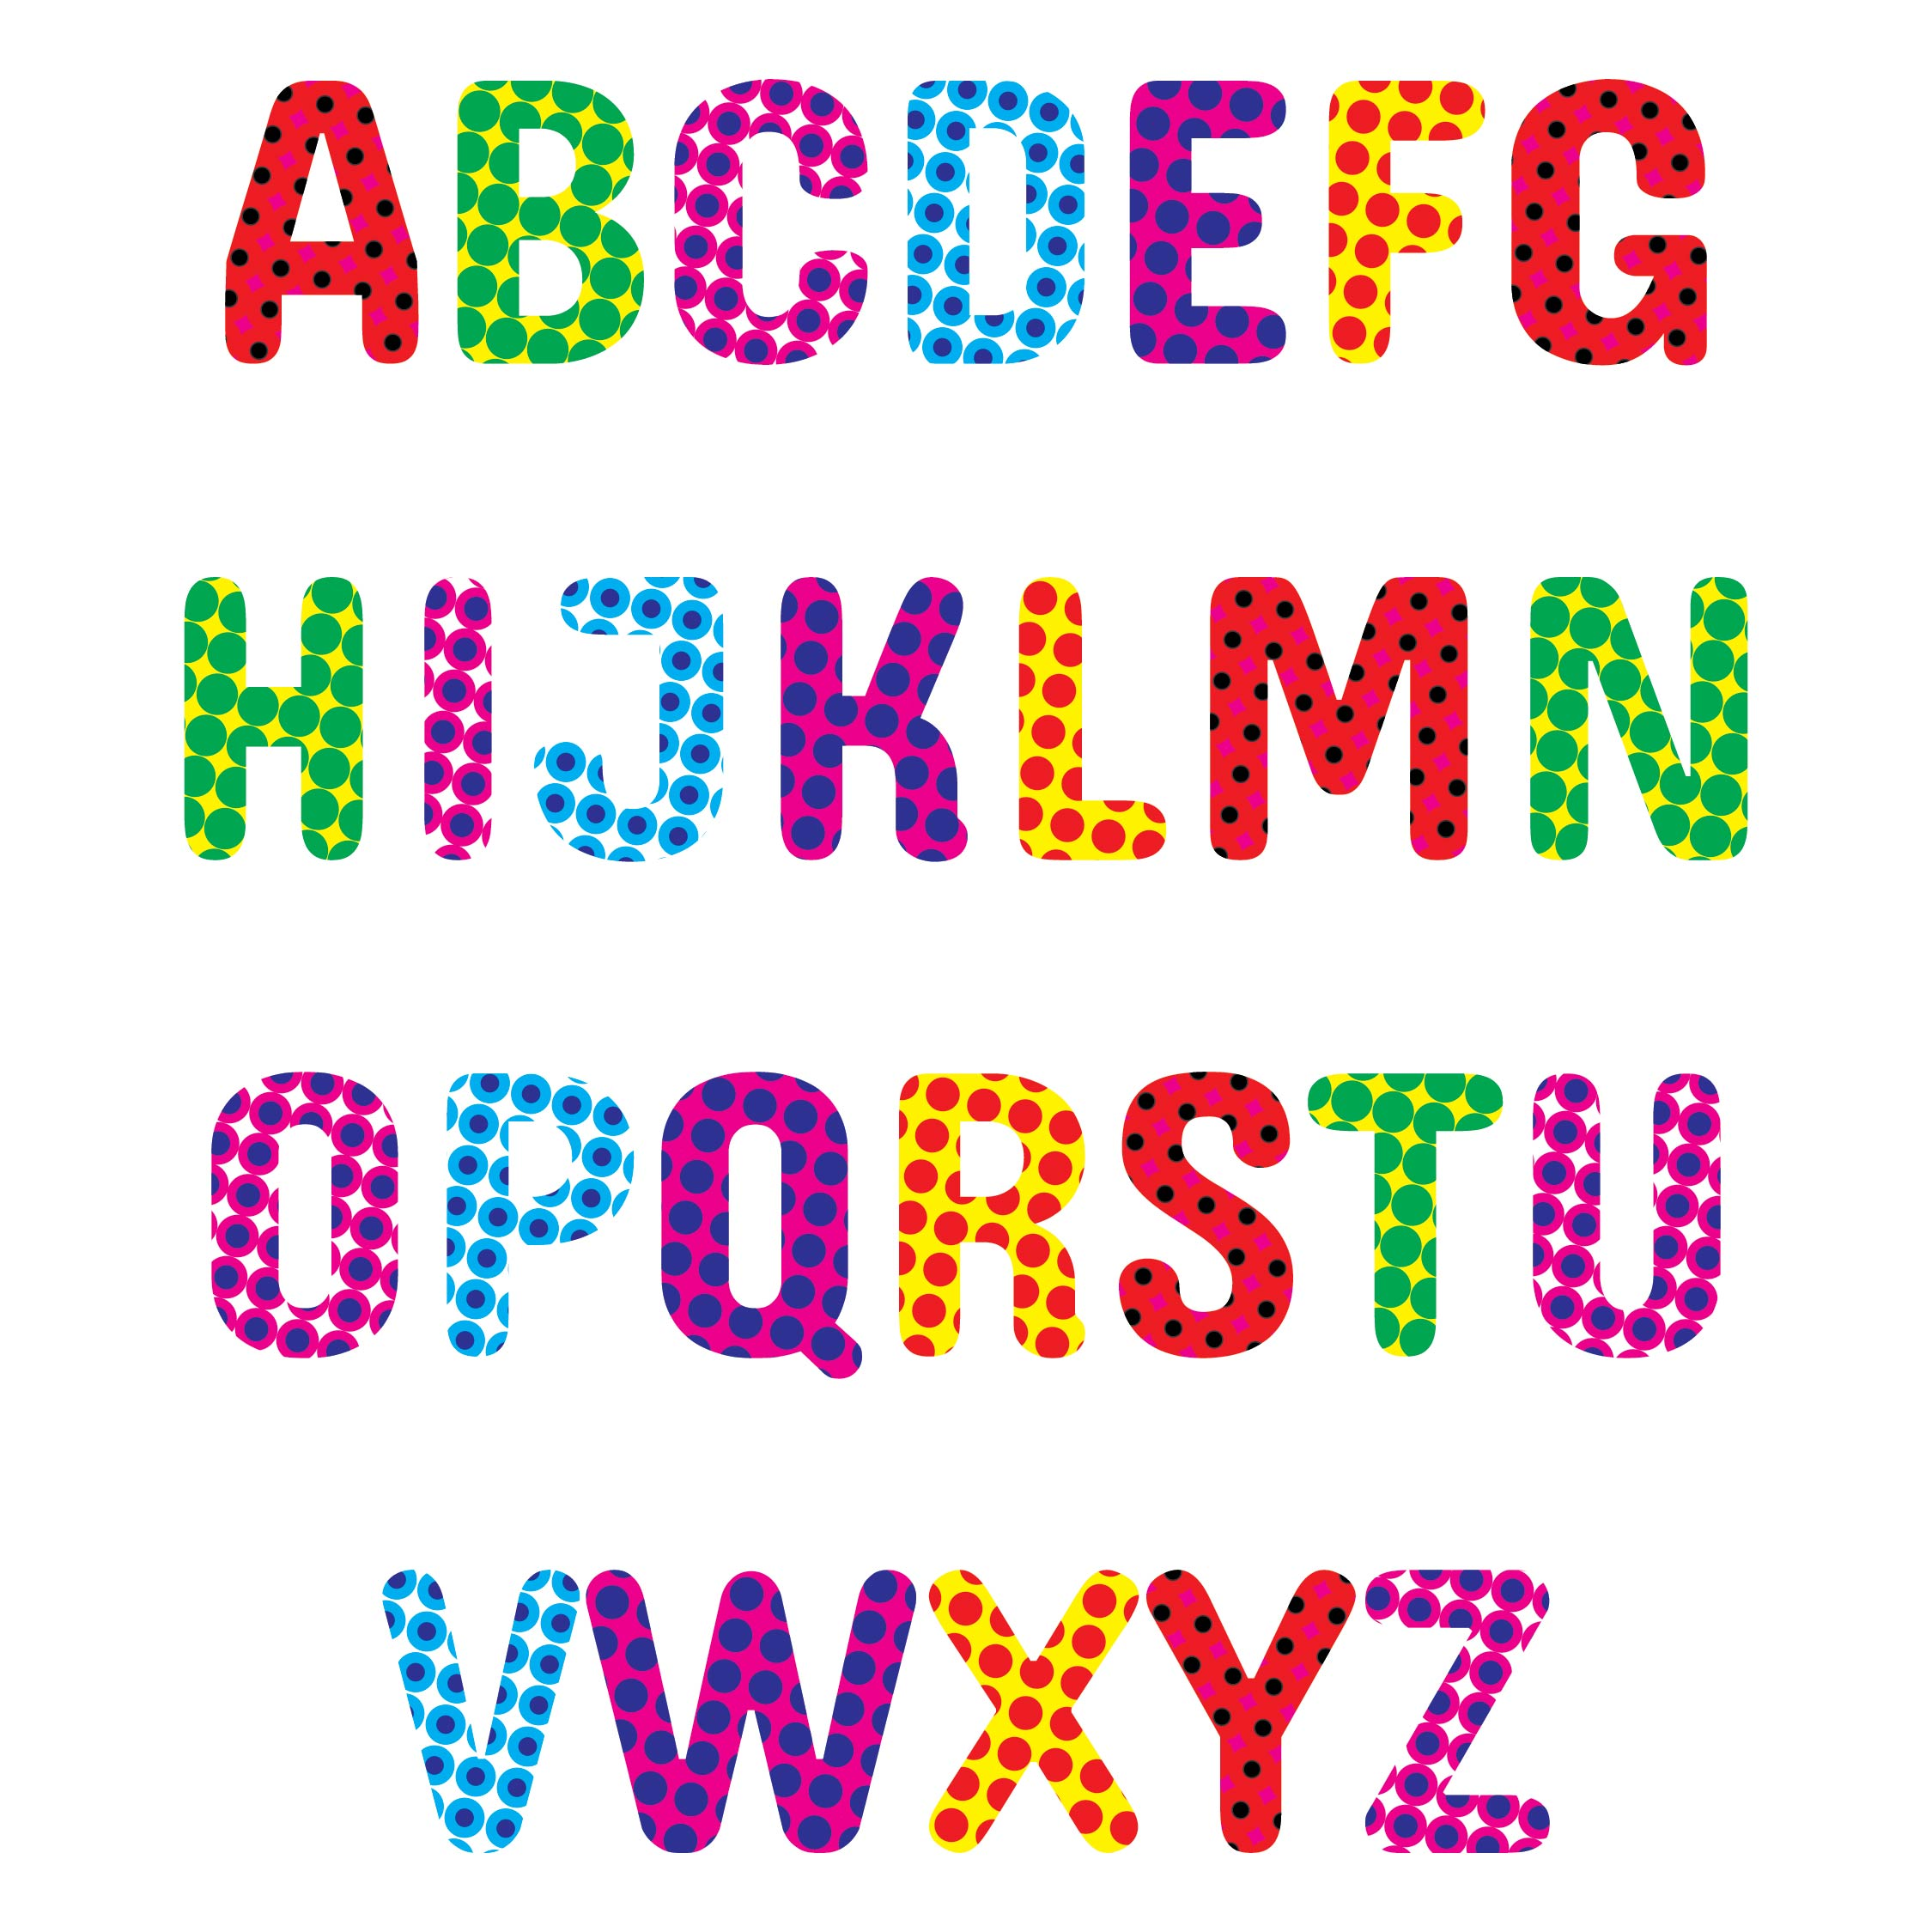 Polka Dot Alphabet Letters to Print